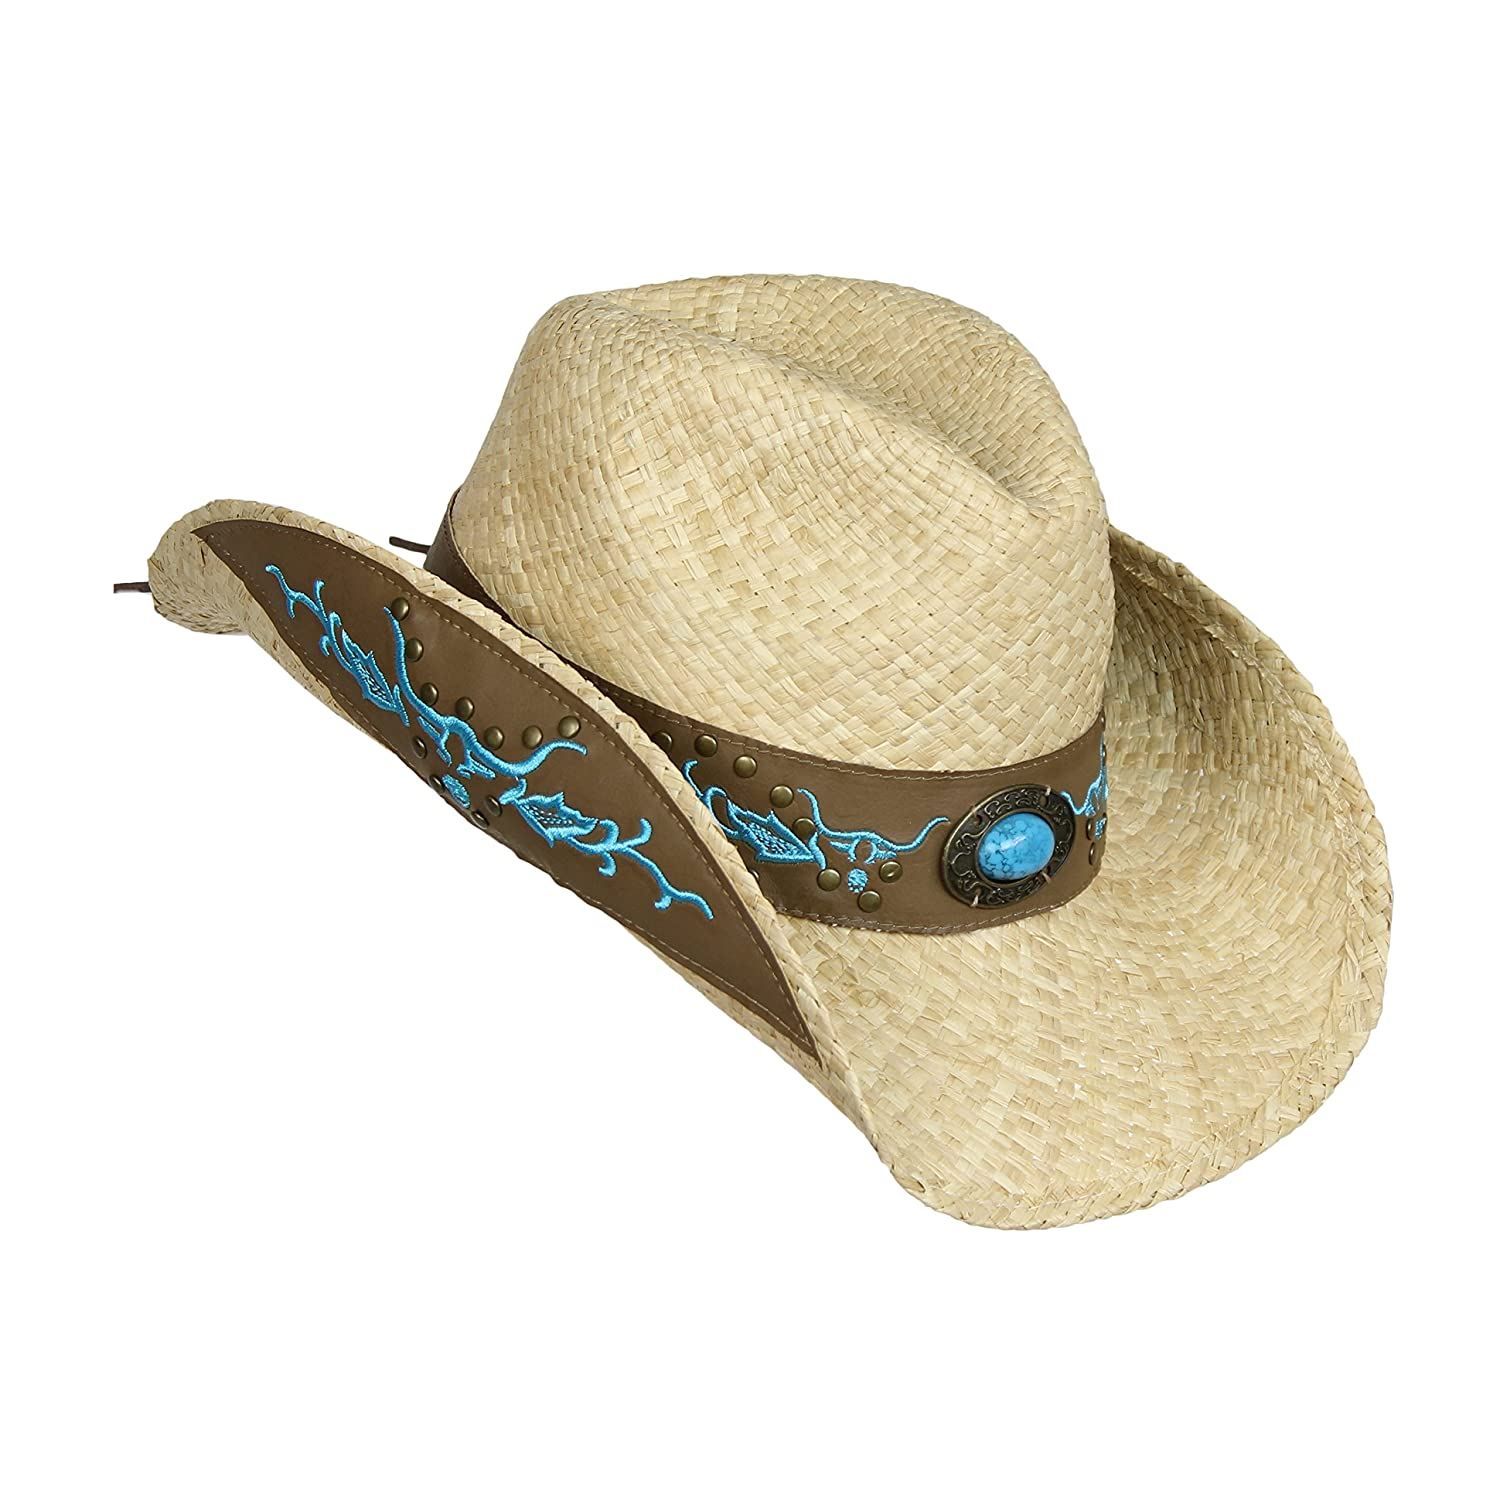 0bb9840de394b9 Straw Cowboy Hat w/ Faux Leather, Teal Bull Design, Turquoise Concho,  Shapeable Brim at Amazon Women's Clothing store: